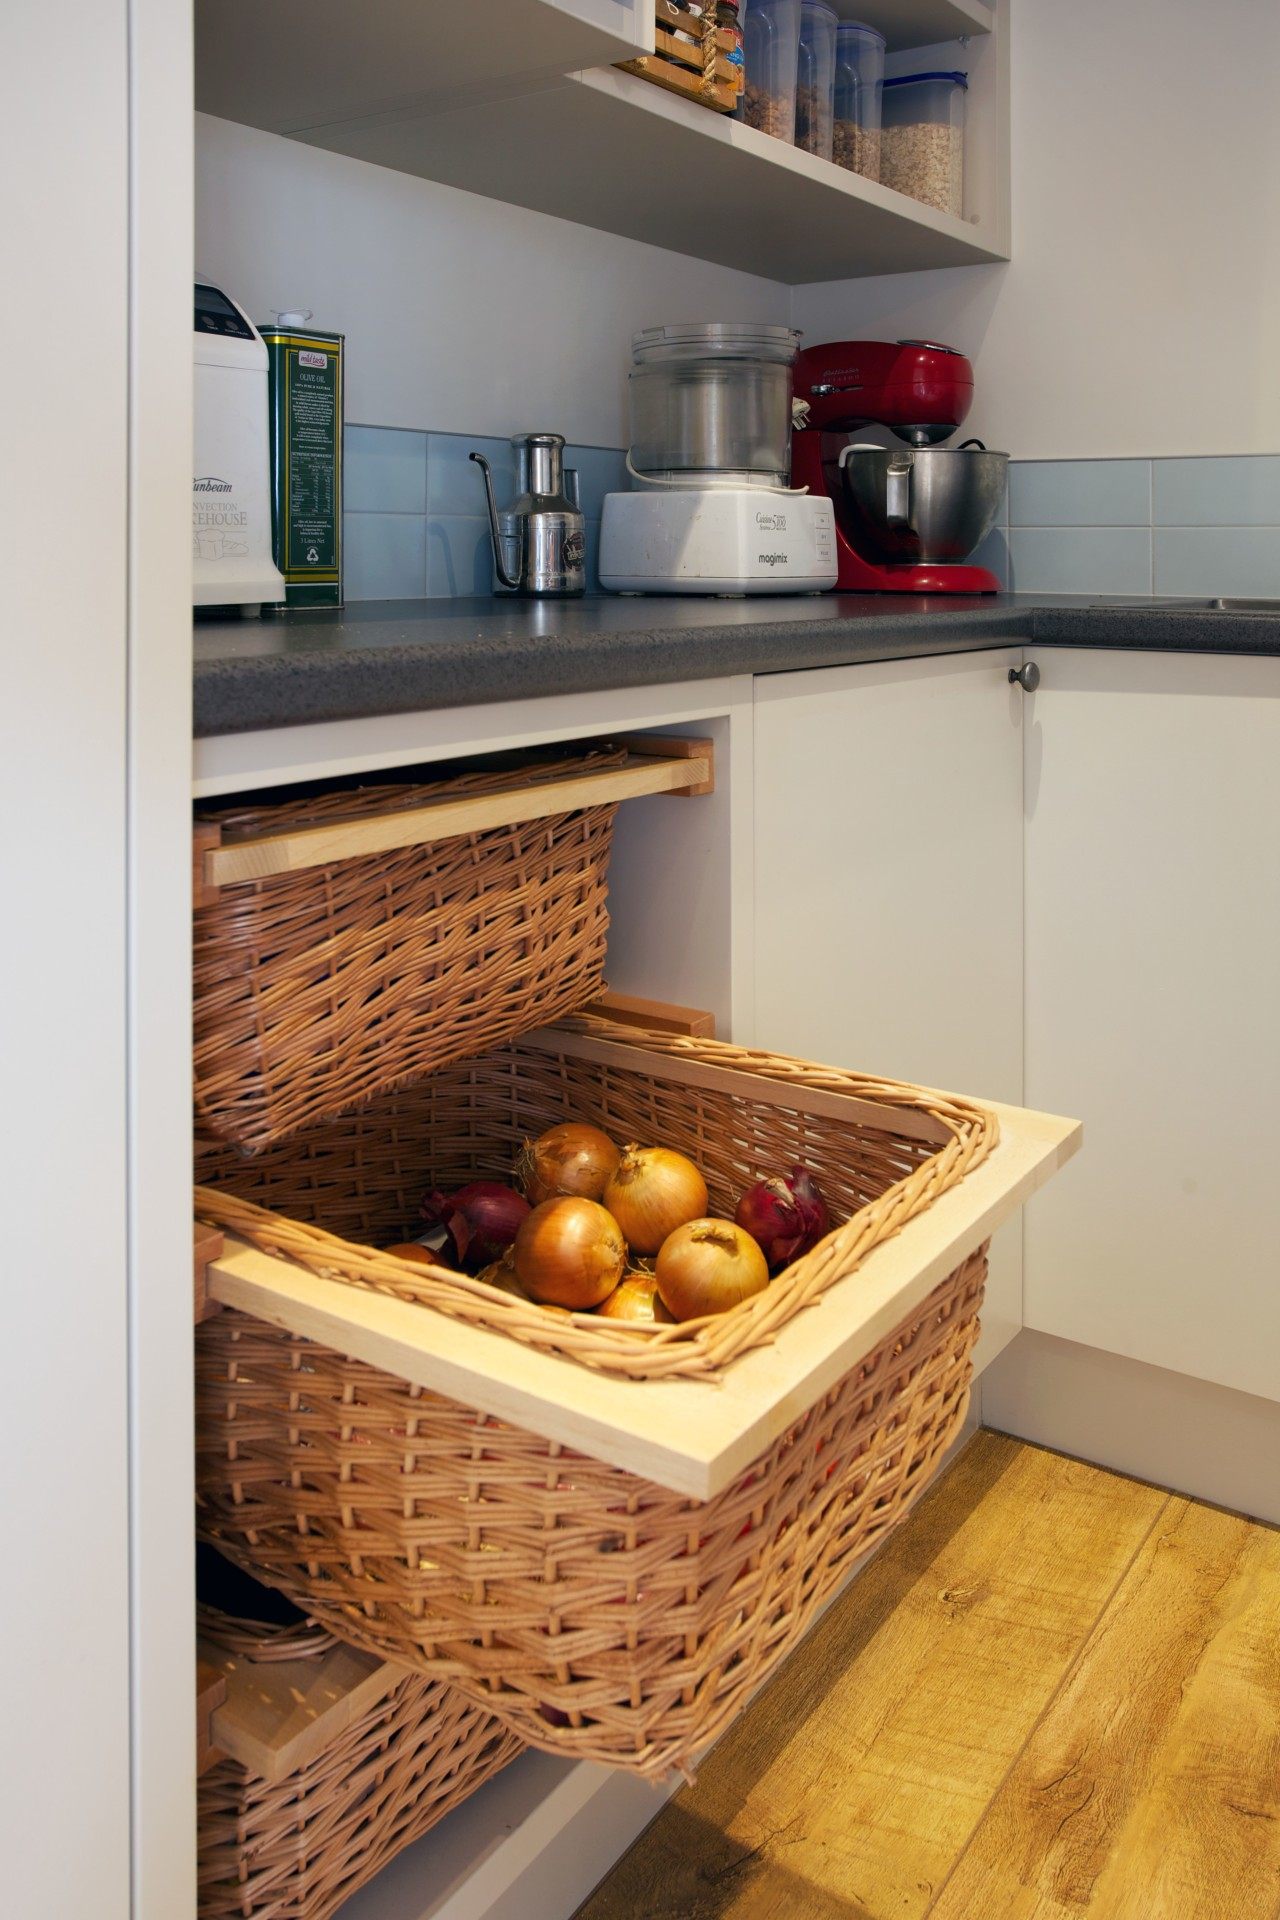 There are pull-out wicker baskets for storing vegetables countertop, flooring, kitchen, gray